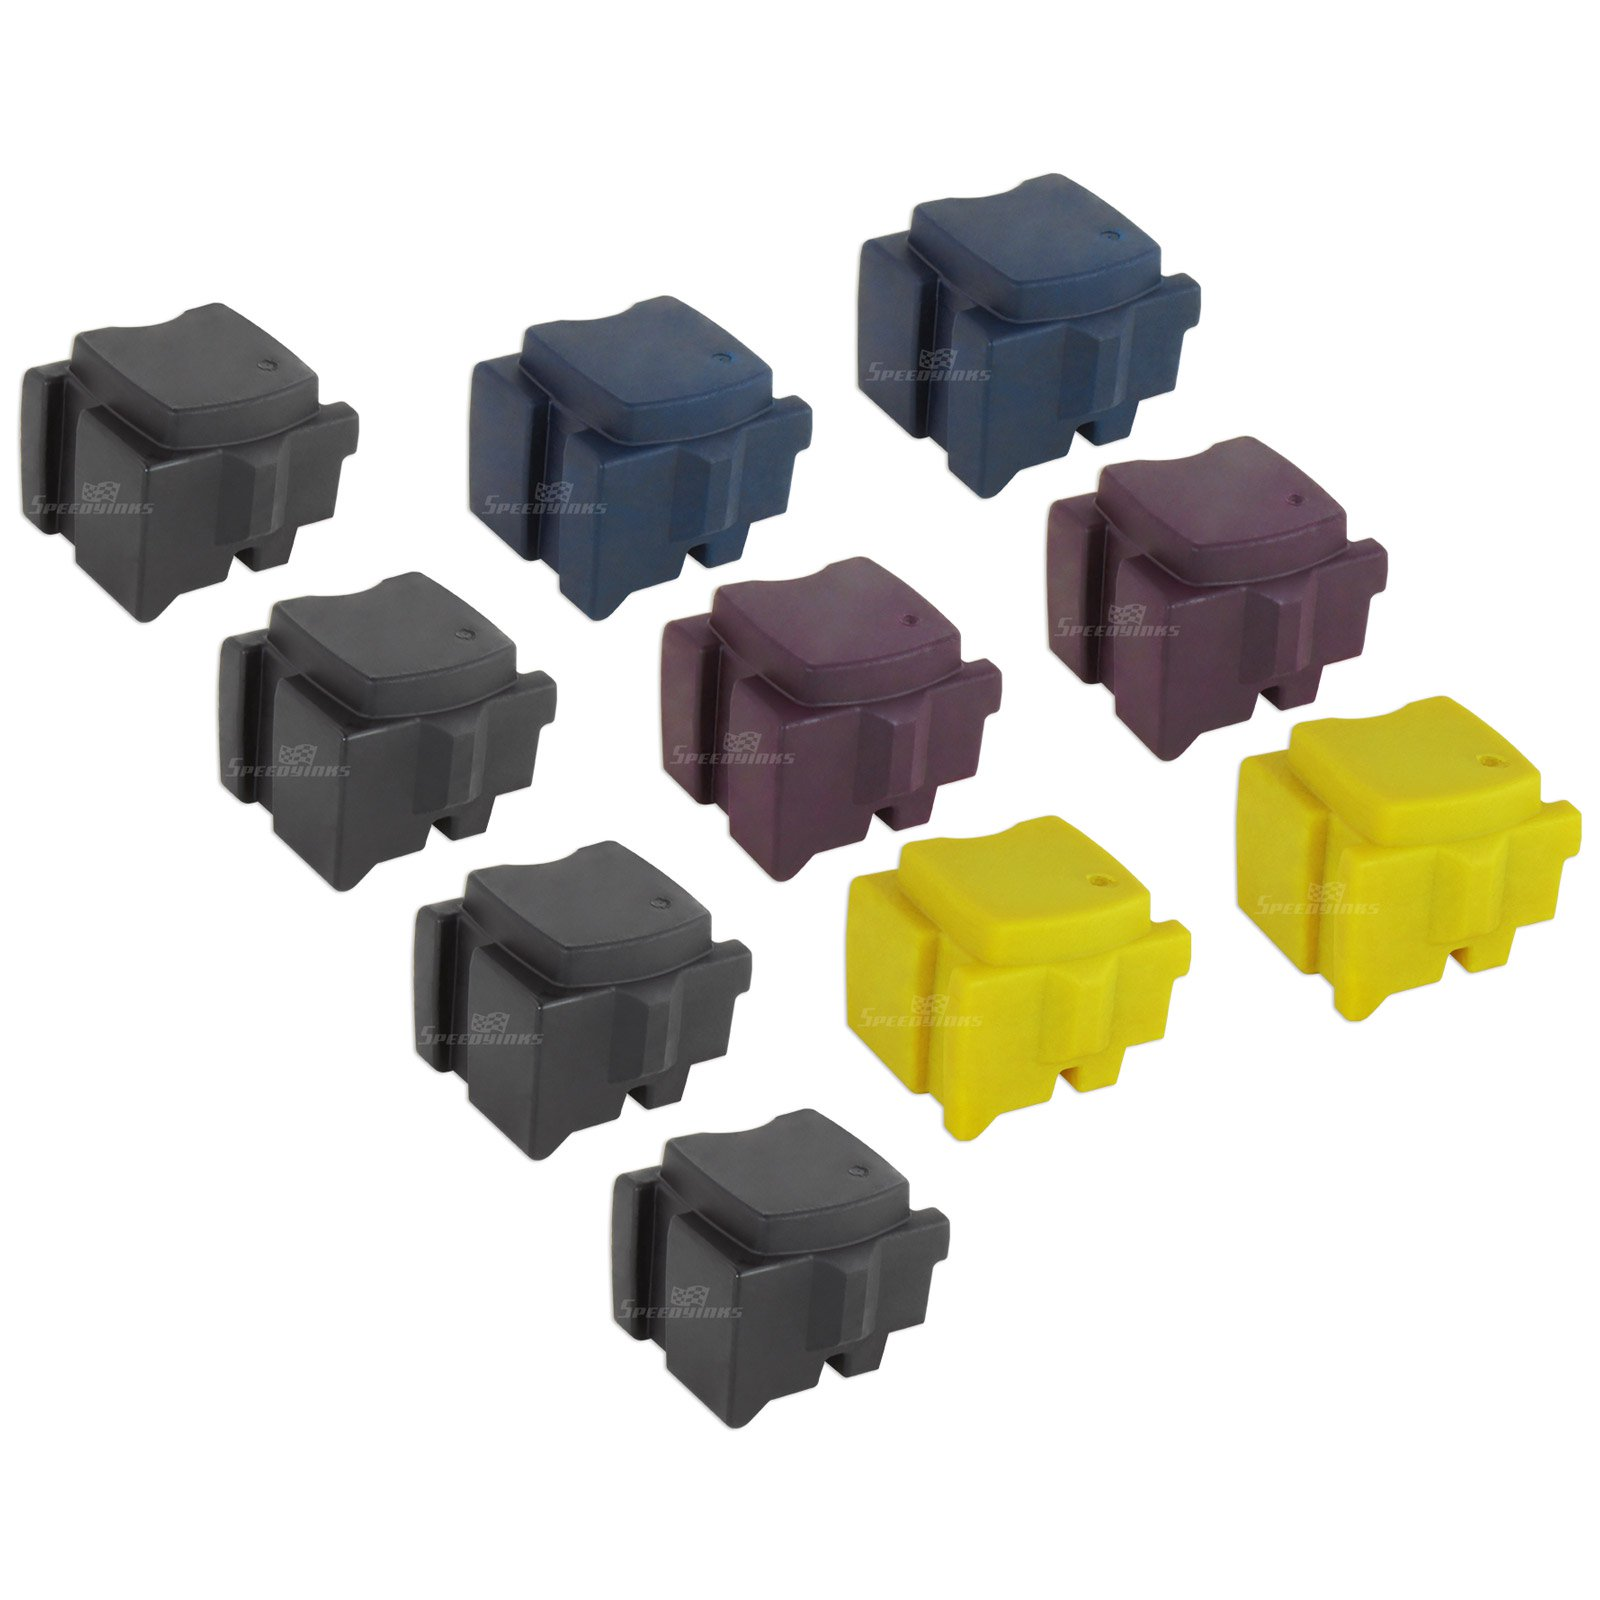 Speedy Inks - Compatible Replacements for Xerox Set of 10 Solid Ink Sticks Includes: 4 108R00929 Black, 2 108R00926 Cyan, 2 108R00927 Magenta, and 2 108R00928 Yellow for use in Xerox ColorQube